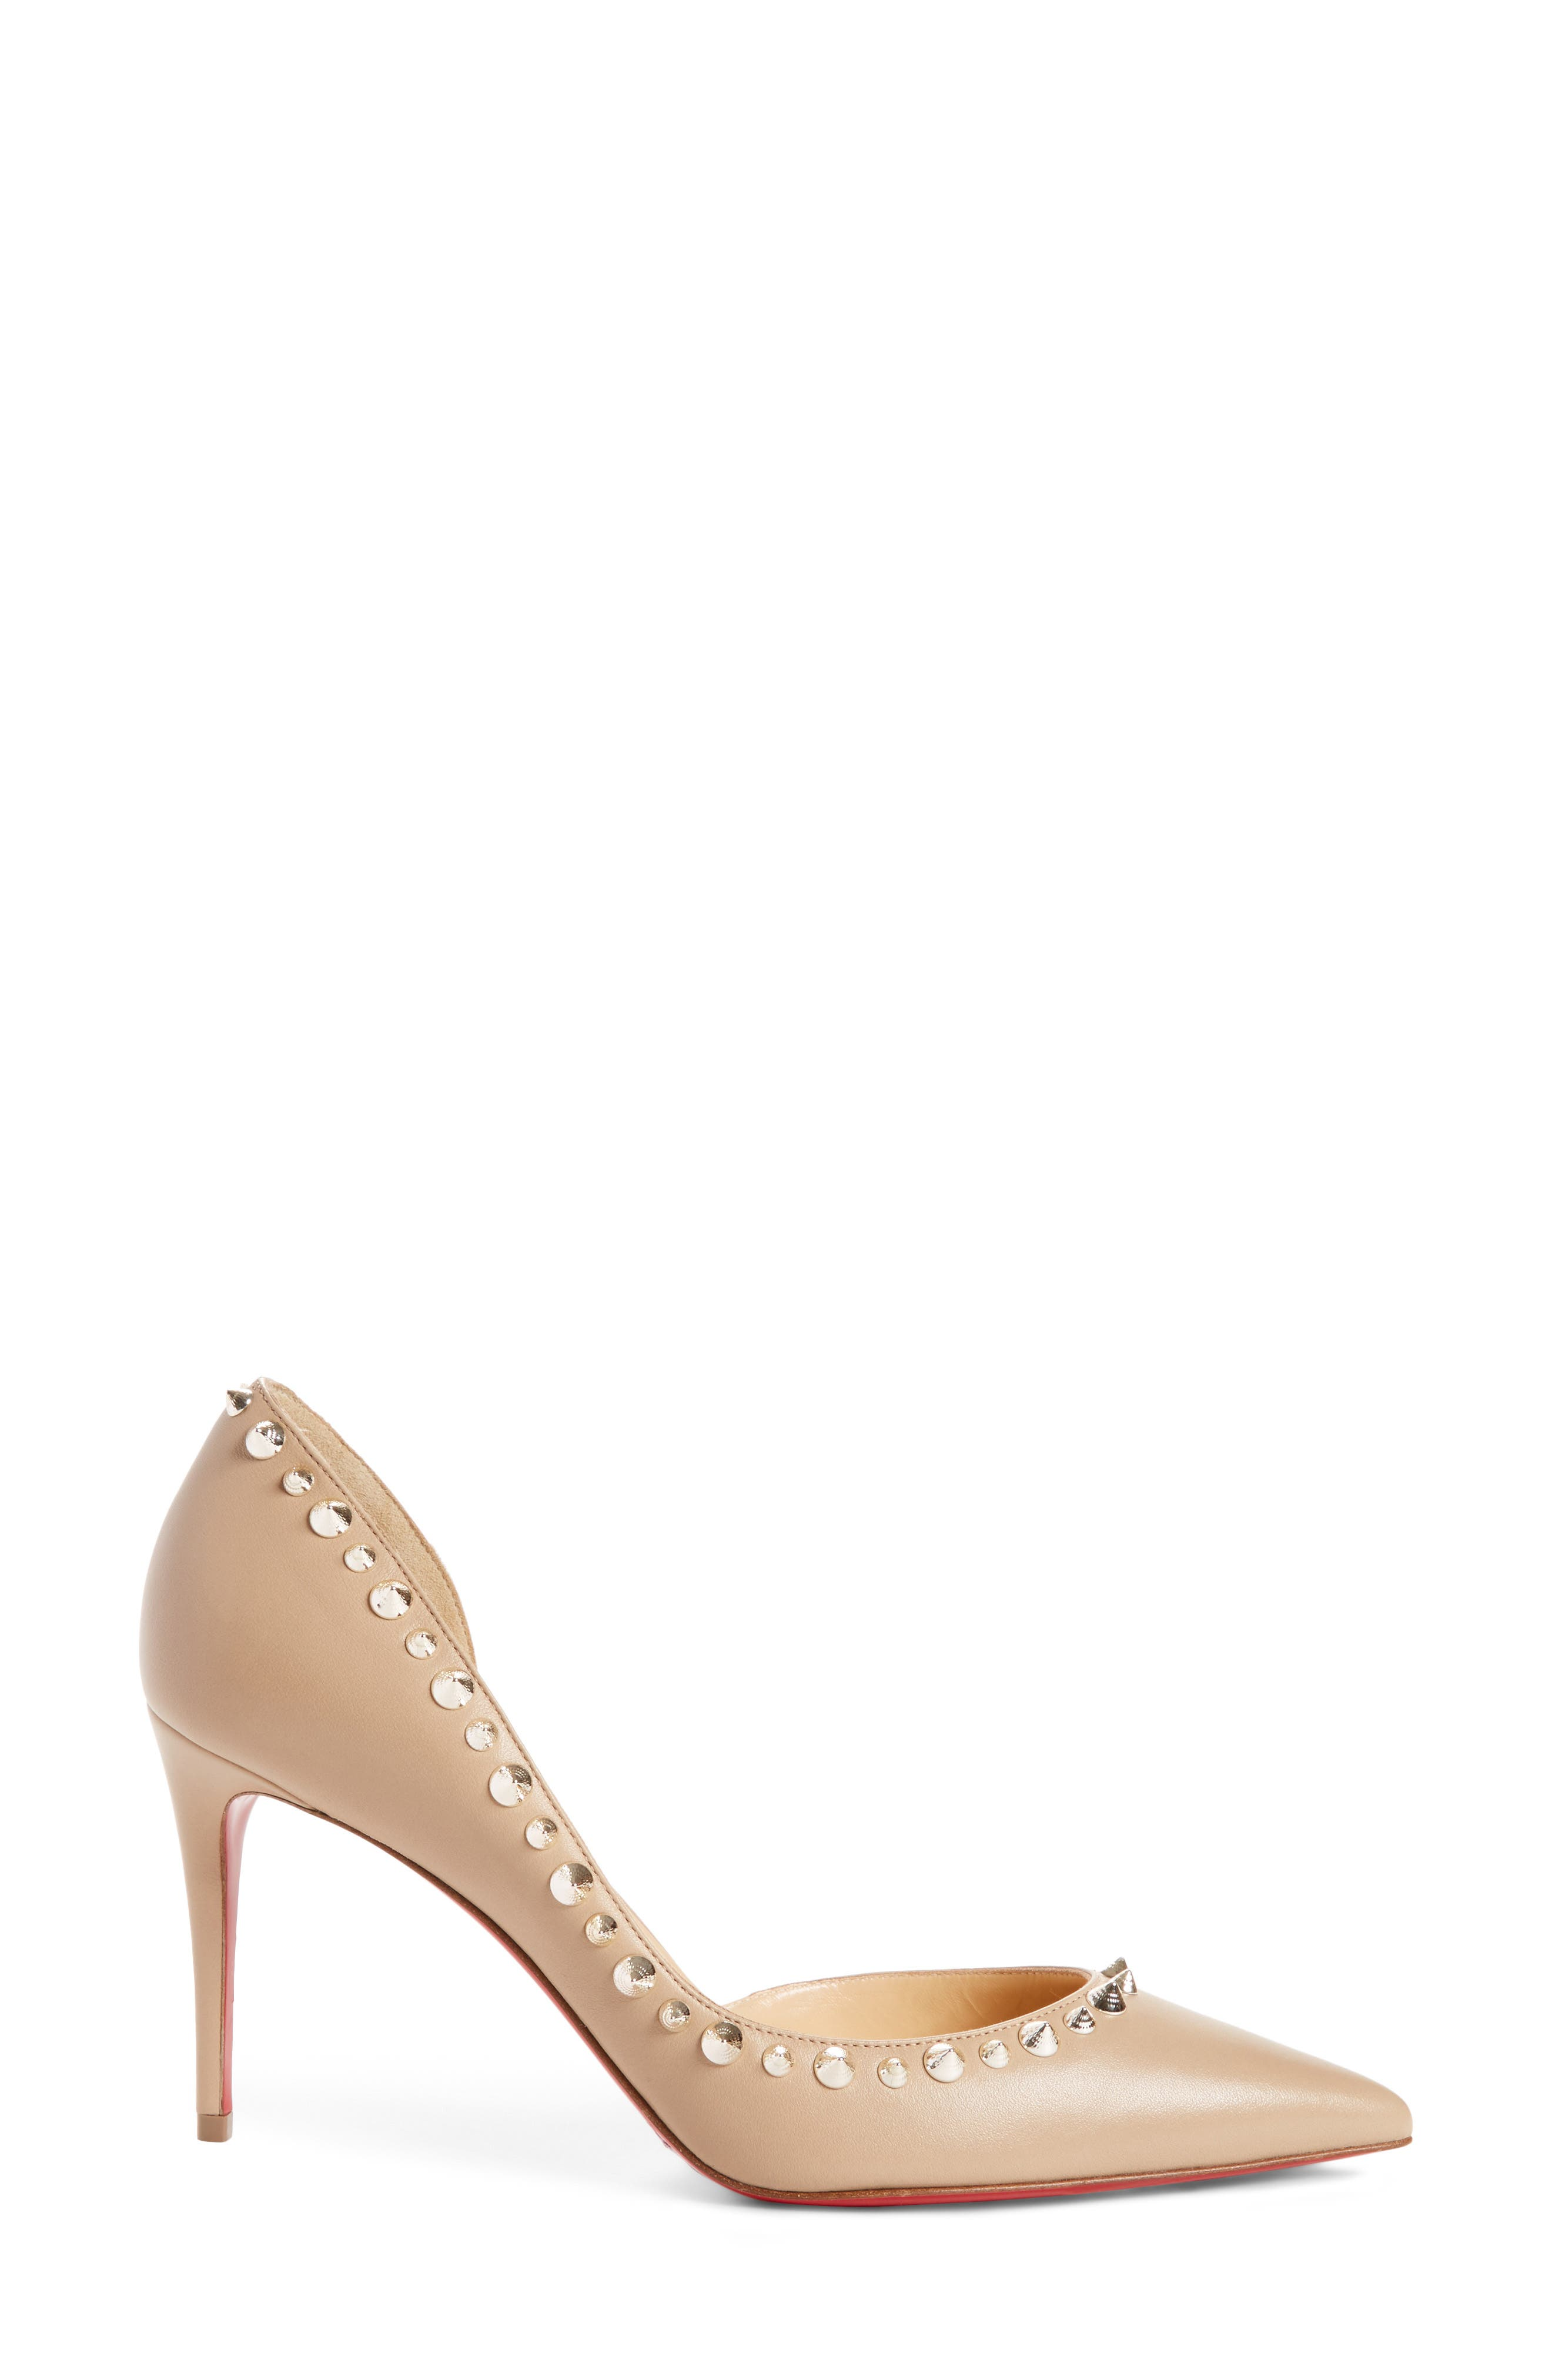 Irishell Studded Half d'Orsay Pump,                             Alternate thumbnail 3, color,                             NUDE/ WHITE GOLD